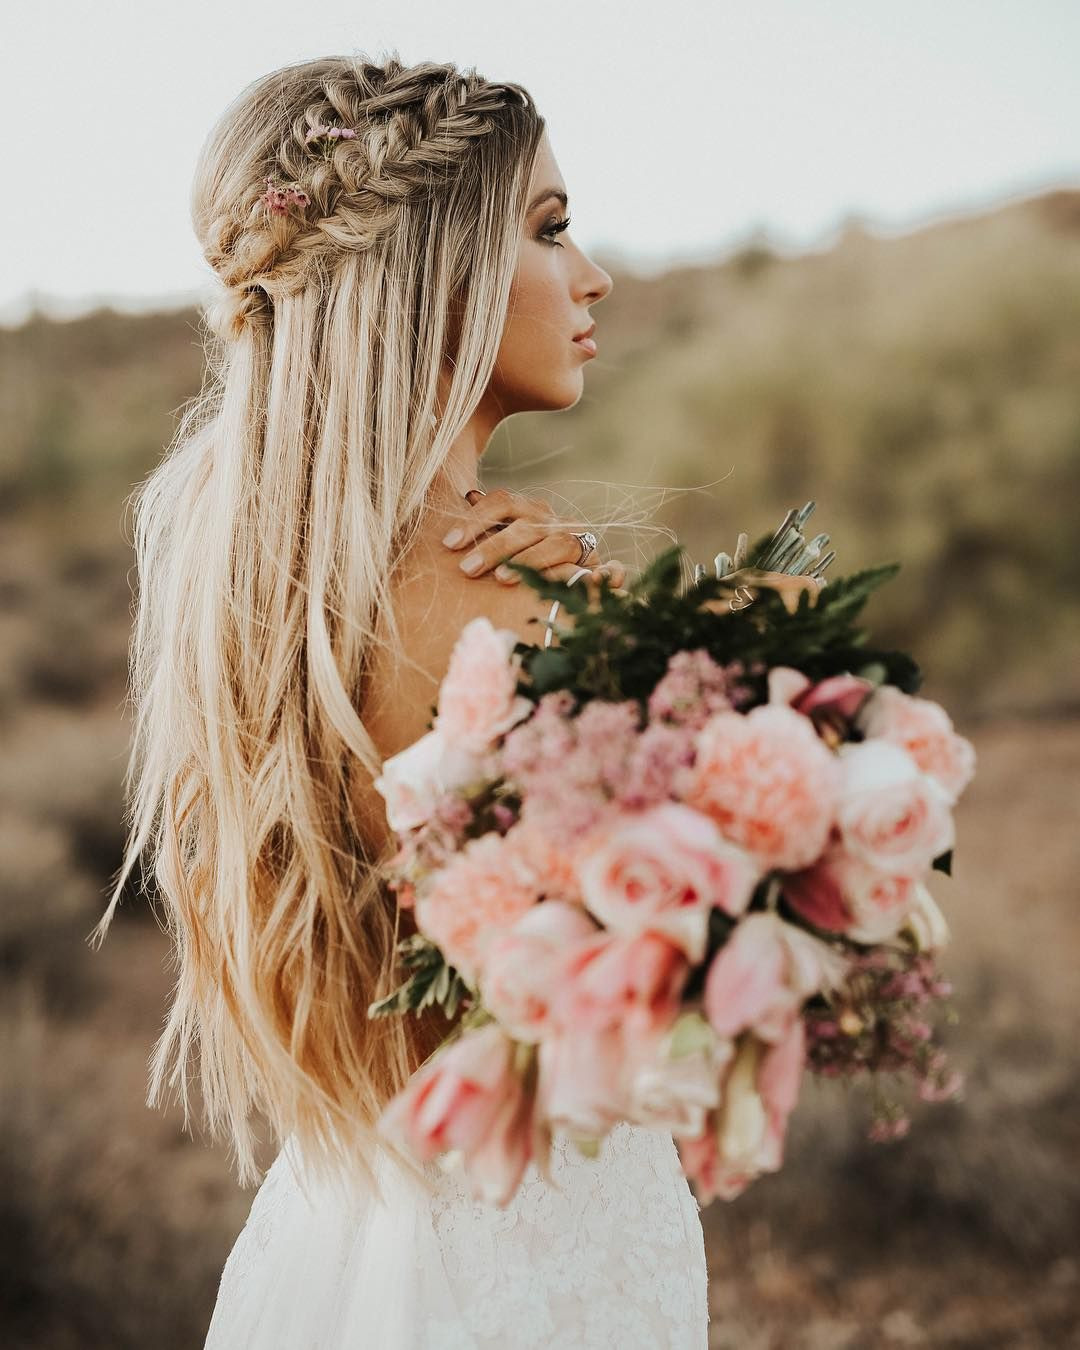 Wedding Hairstyle Photos: Long Hairstyle